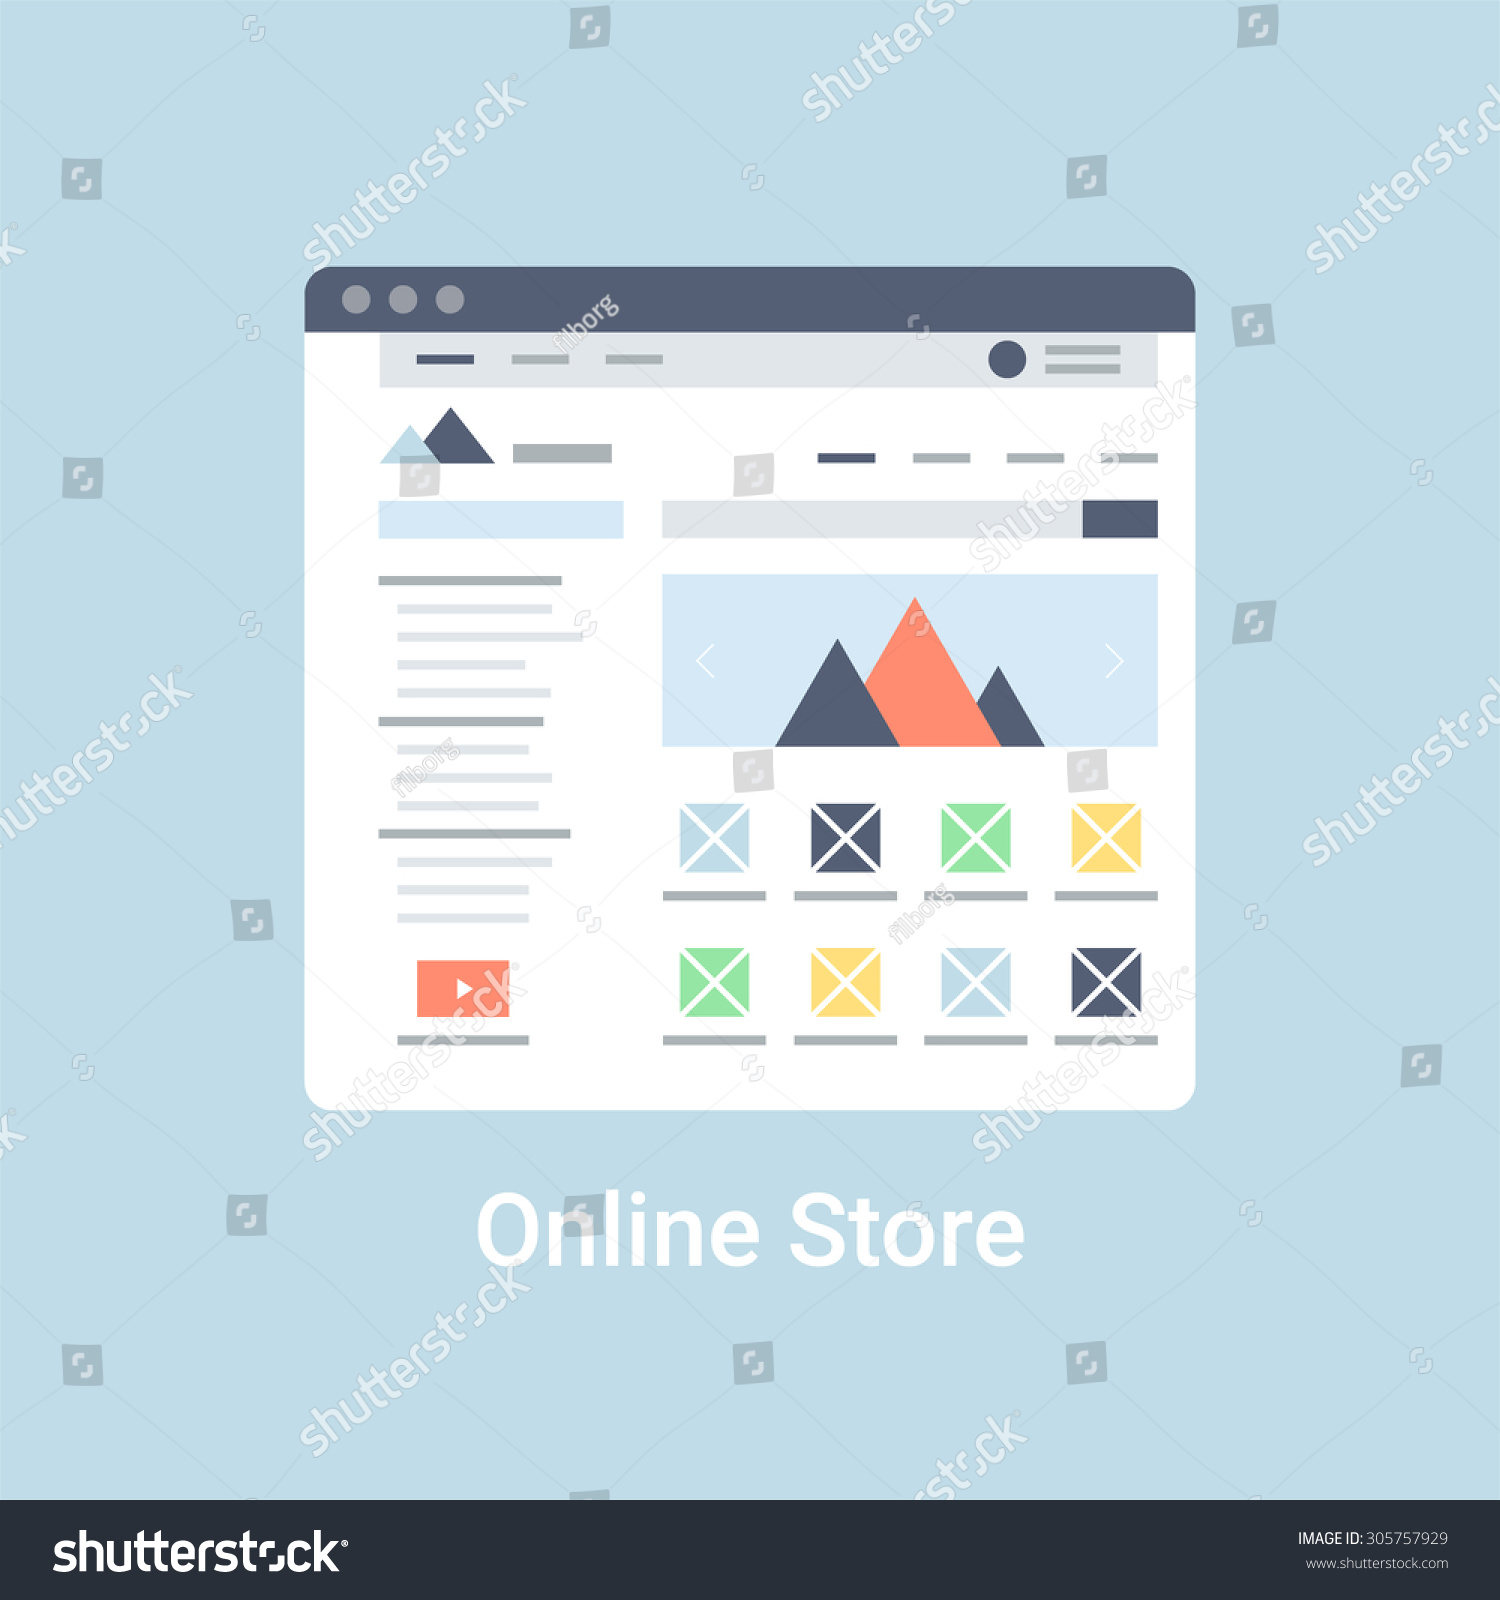 Online store website wireframe interface template stock for Online shop for website